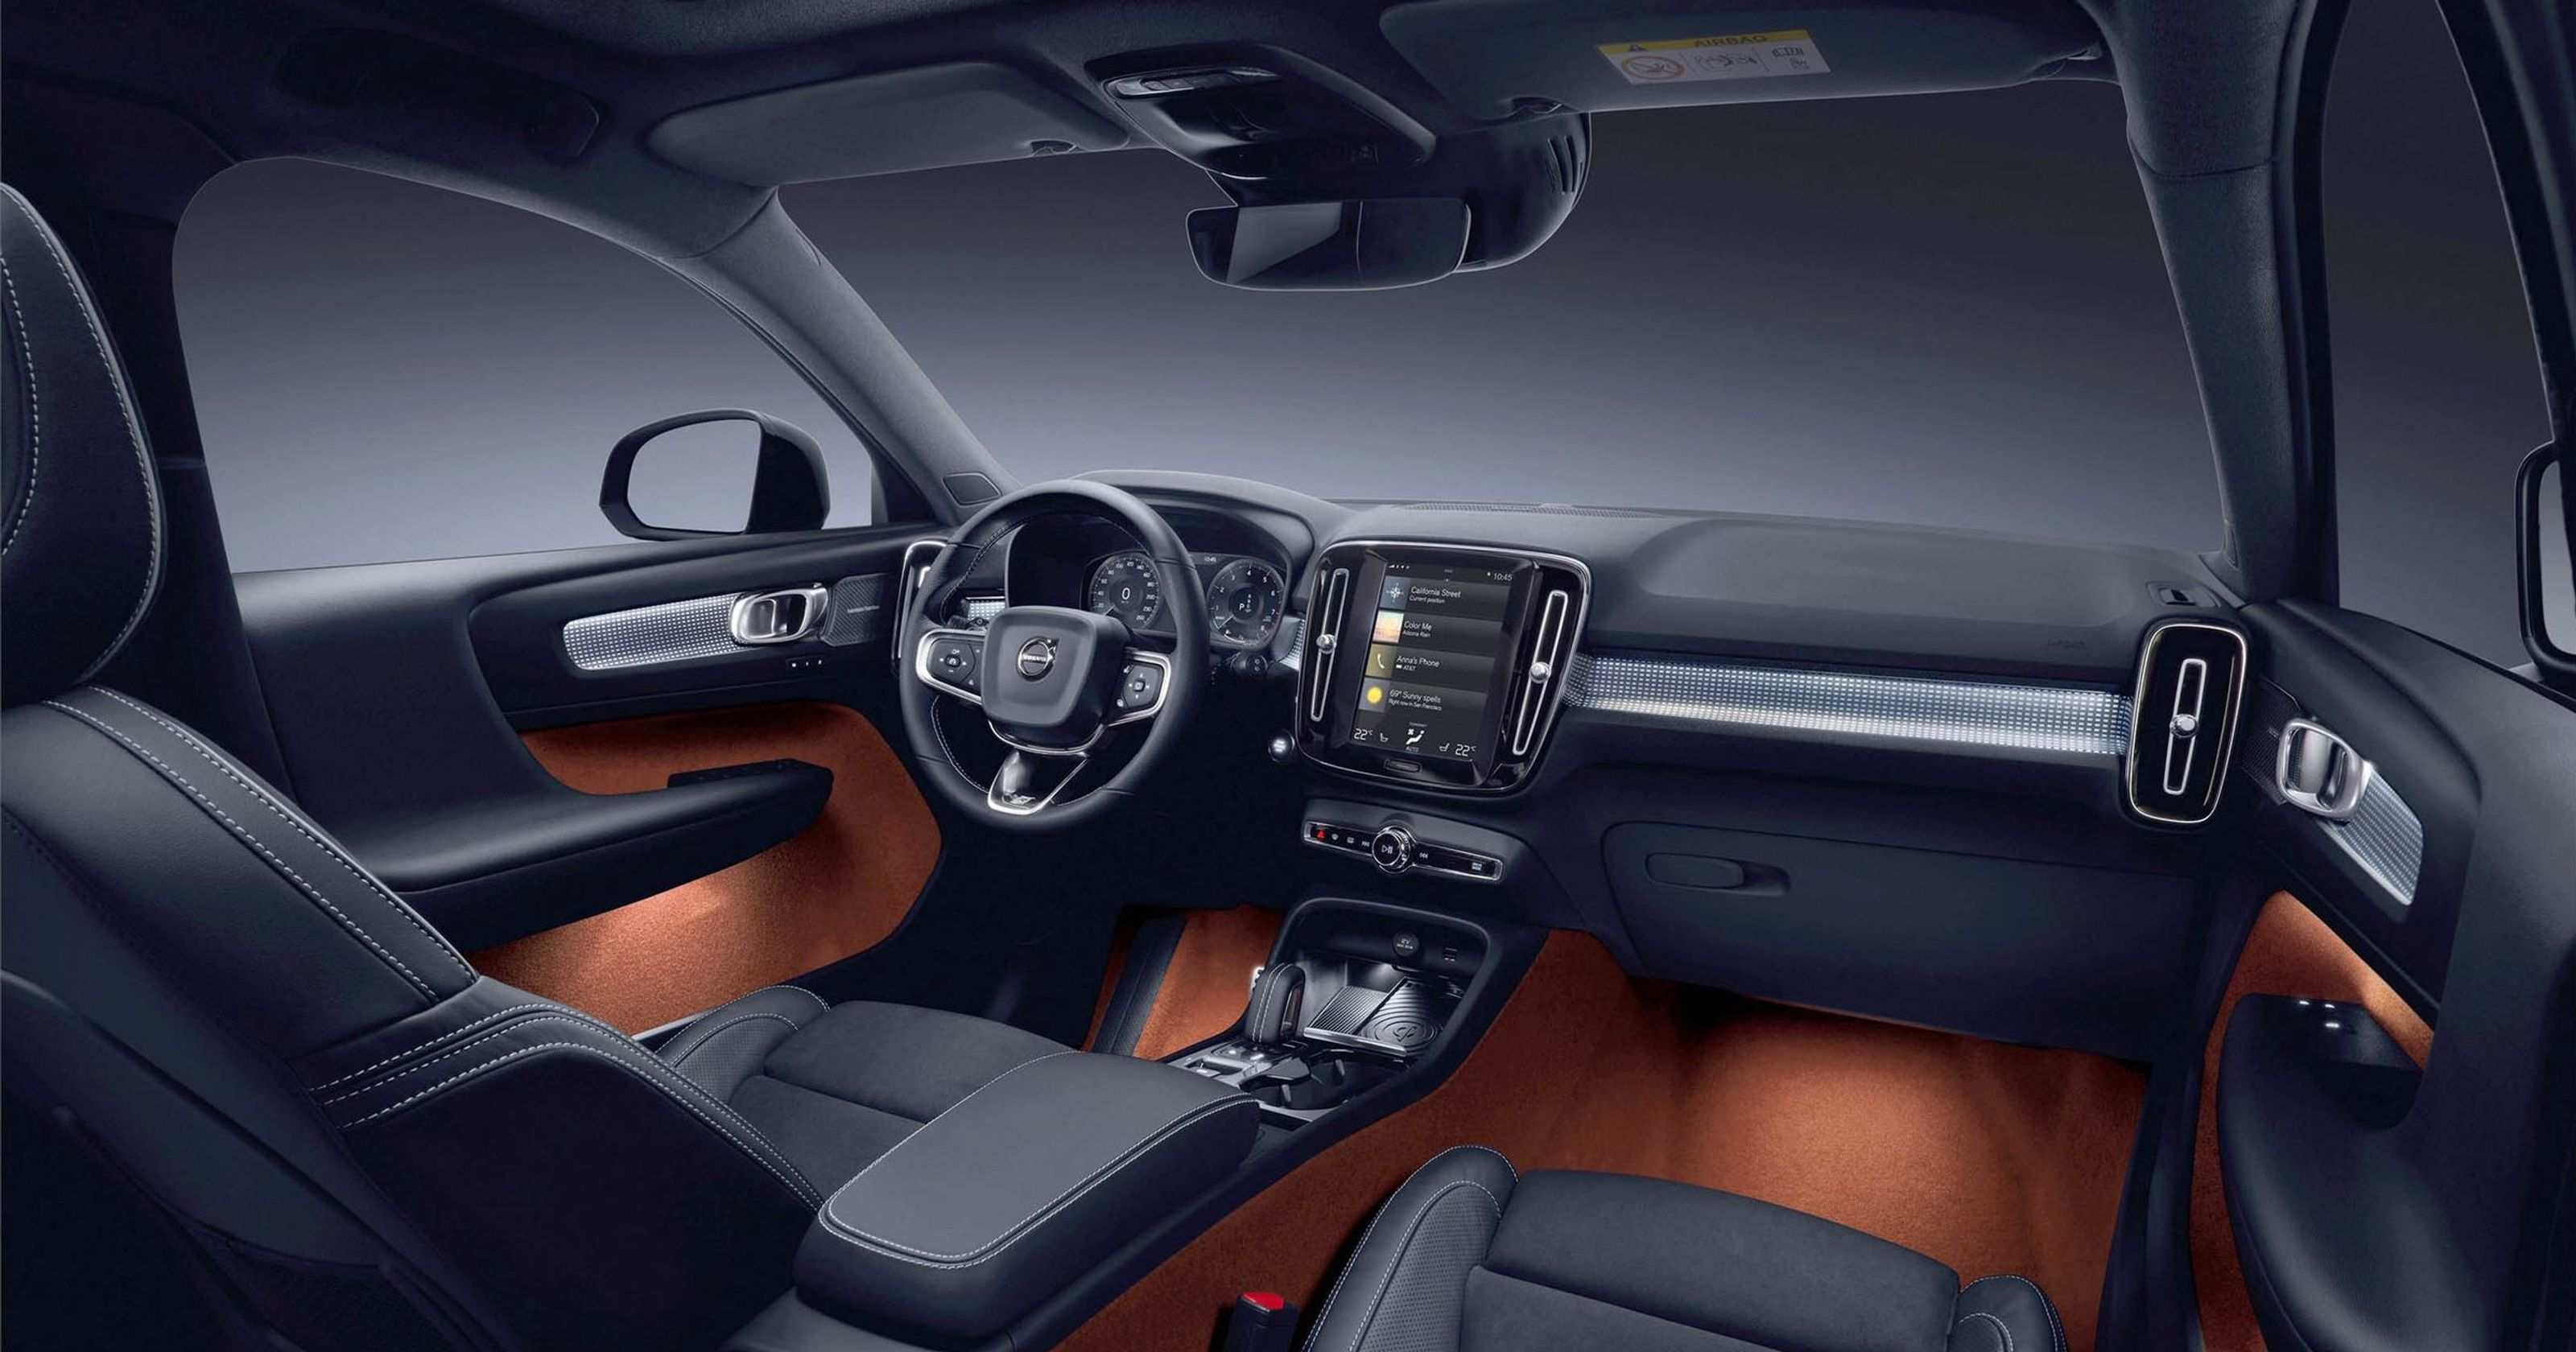 82 Concept of 2019 Volvo Xc40 Interior Images by 2019 Volvo Xc40 Interior